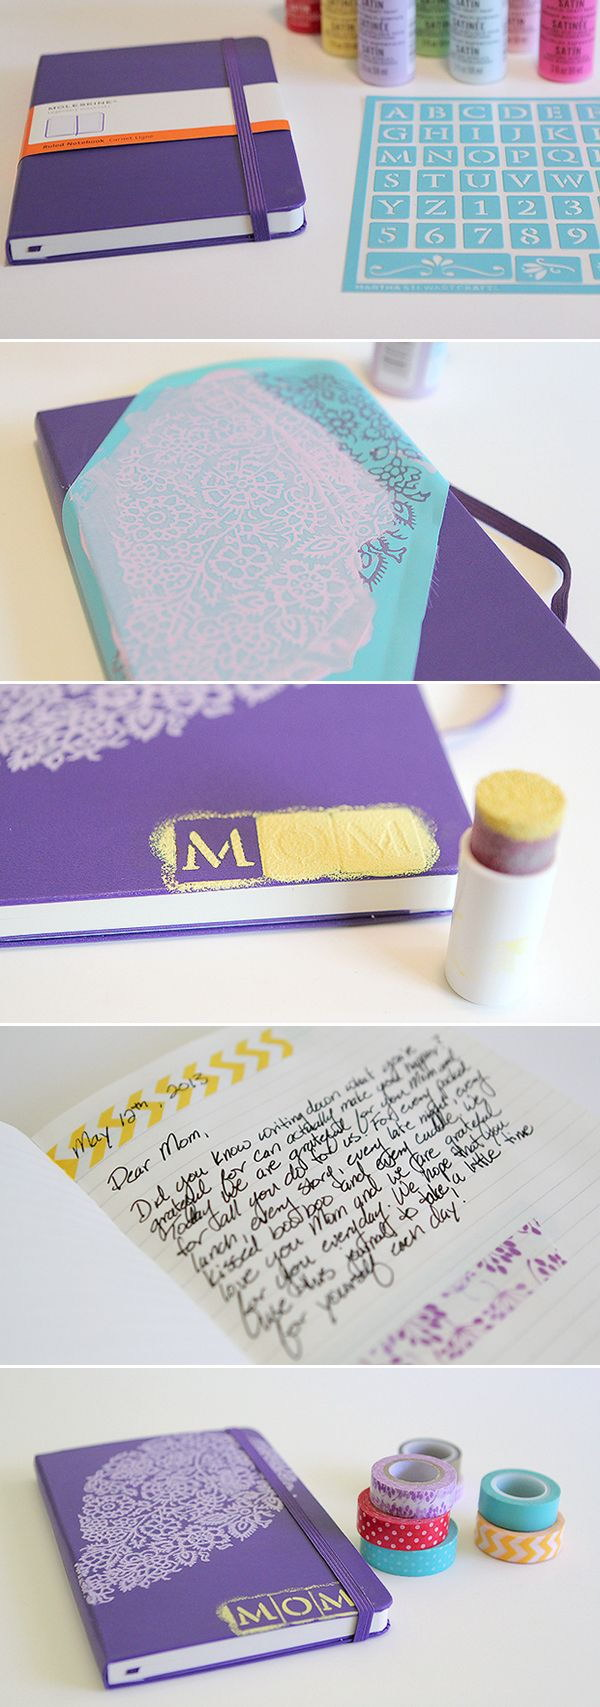 DIY Gratitude Journal.